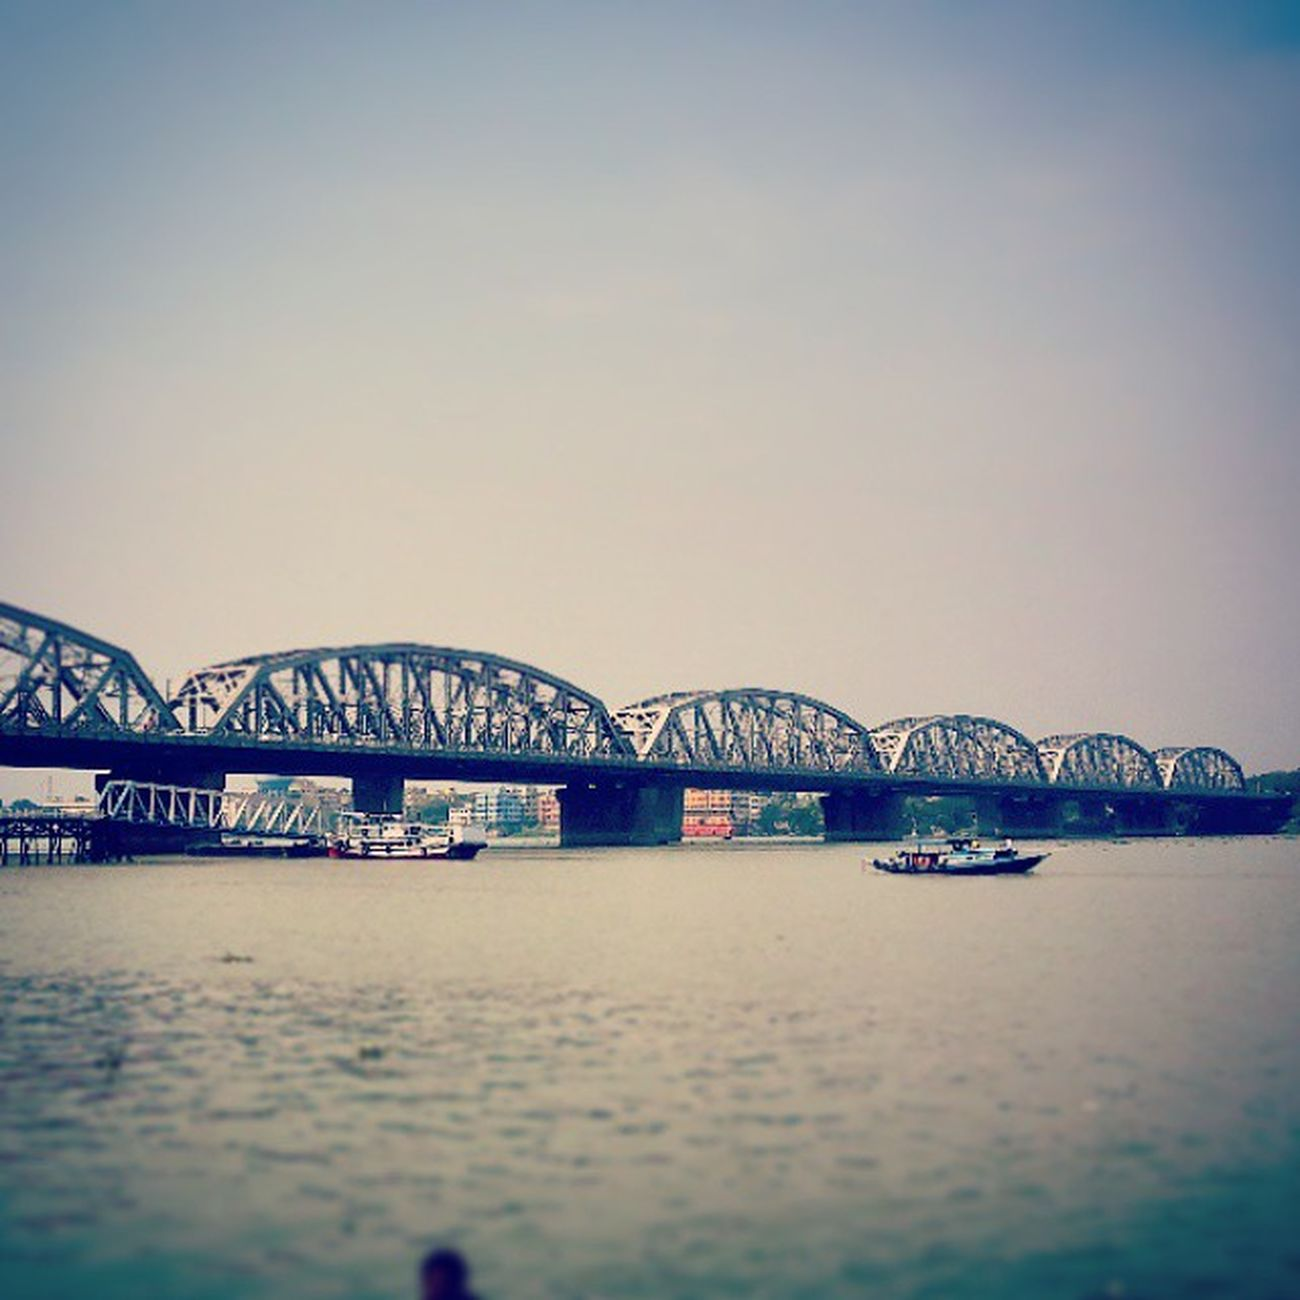 Nivedita Setu better known as Bally bridge Picturesque Ballybridge Or Niveditasetu Morning Shot Sokolkata Dakshineshwar Ghat Rail &road Sunnyday Warmday Kolkata Indiastories Picoftheday Instaclick Instaediting Instaeffect Instaupload Likeforlike Tagforlike Followforfollow